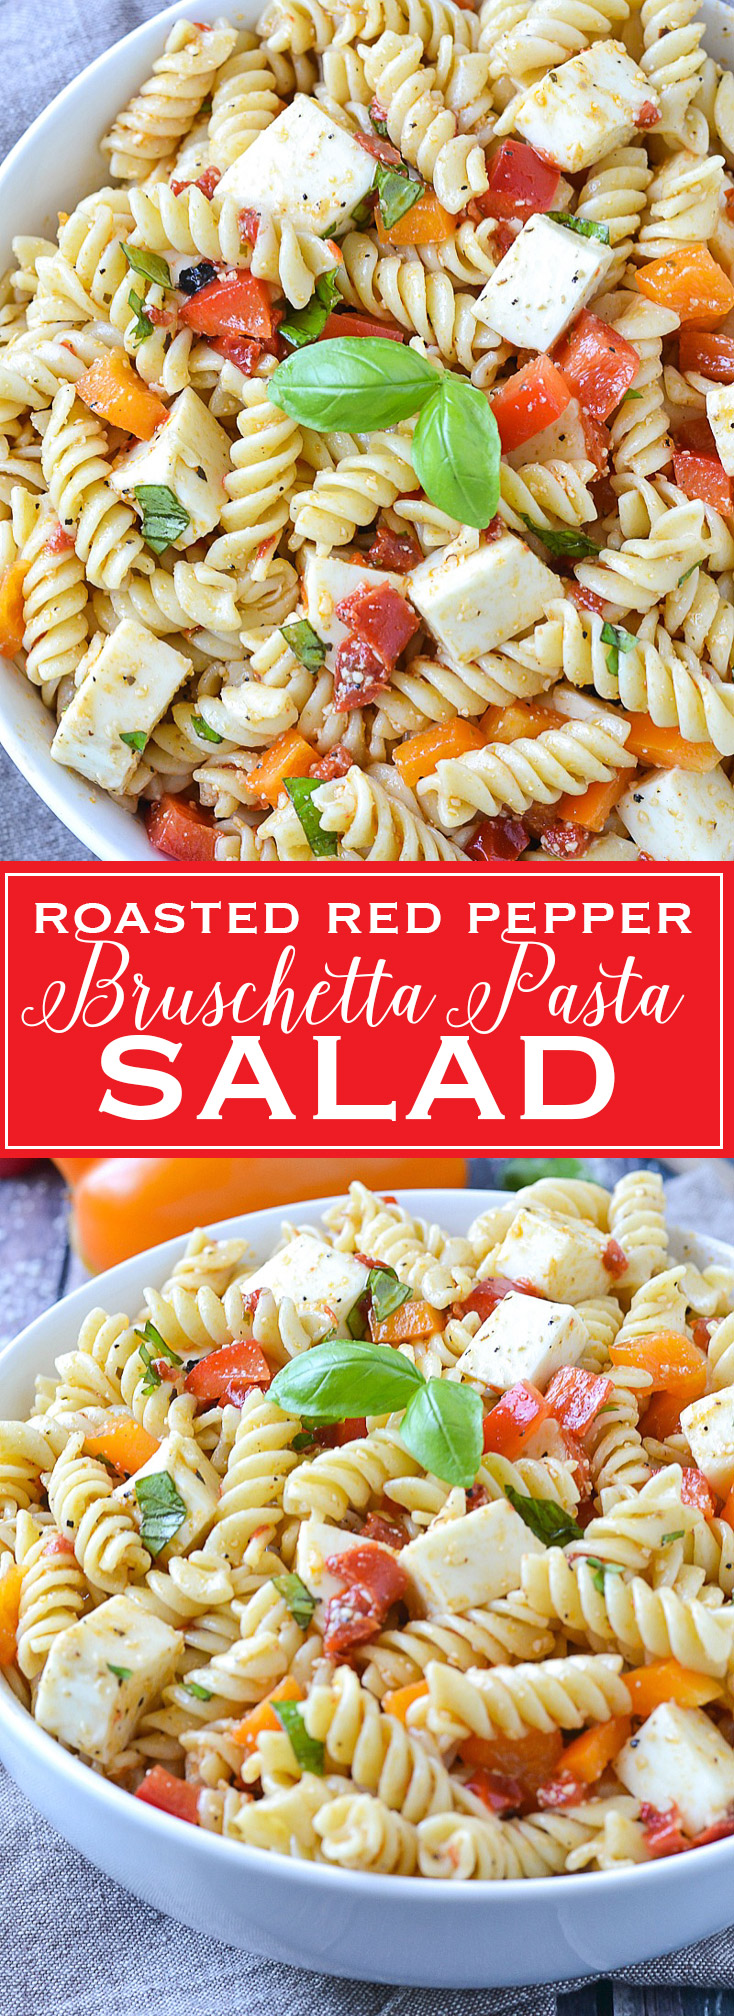 Roasted Red Pepper Bruschetta Pasta Salad | www.motherthyme.com